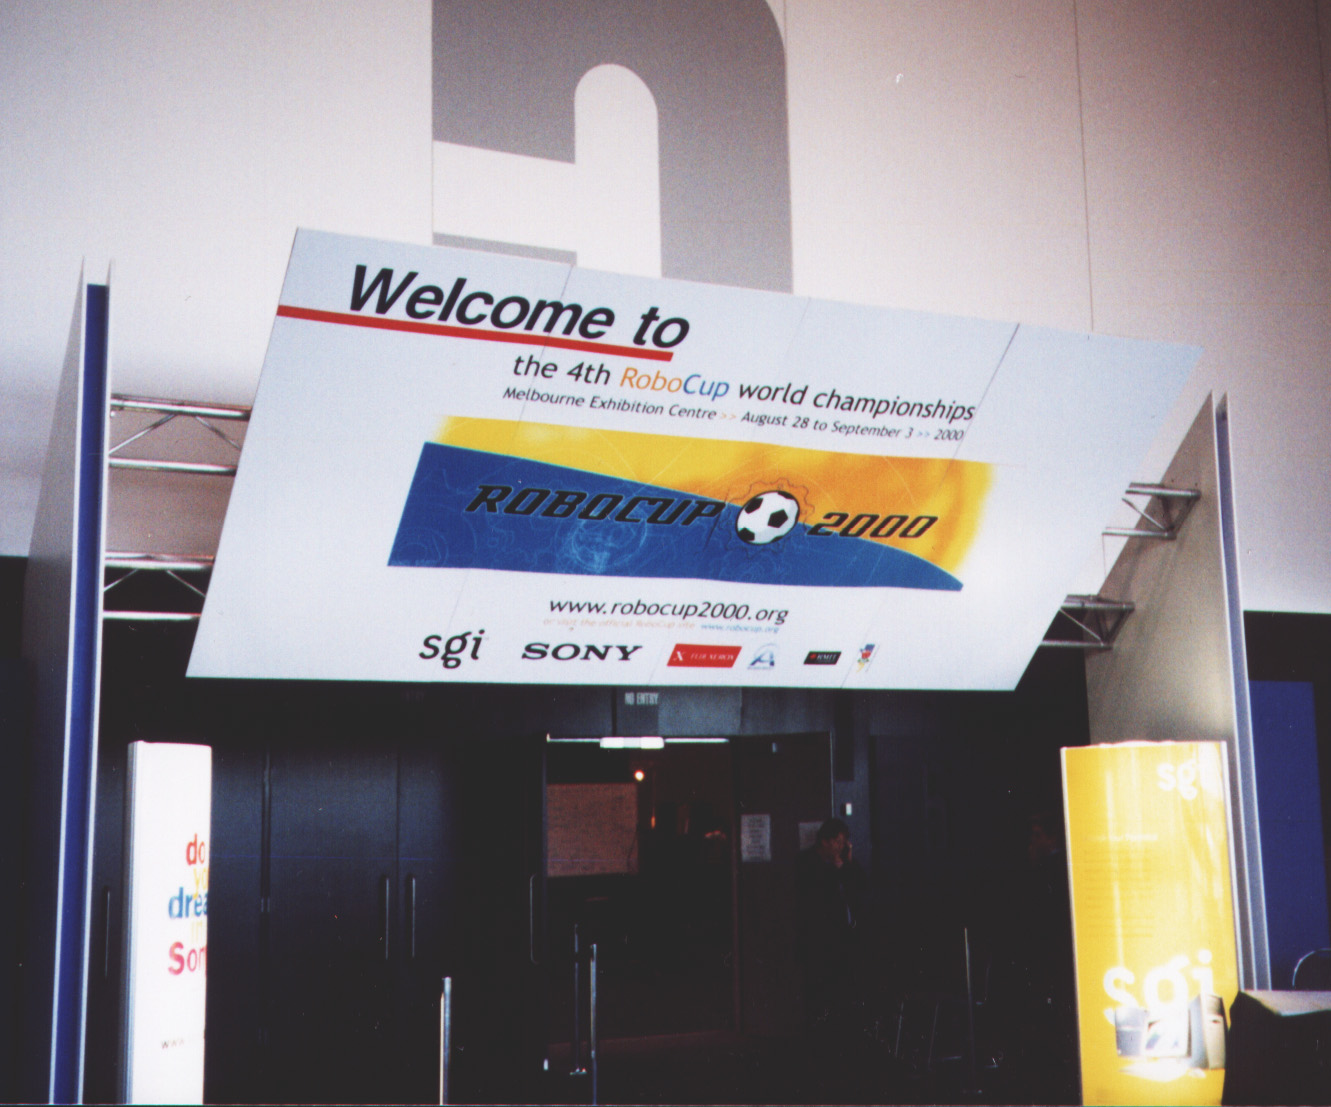 Entry to RoboCup 2000